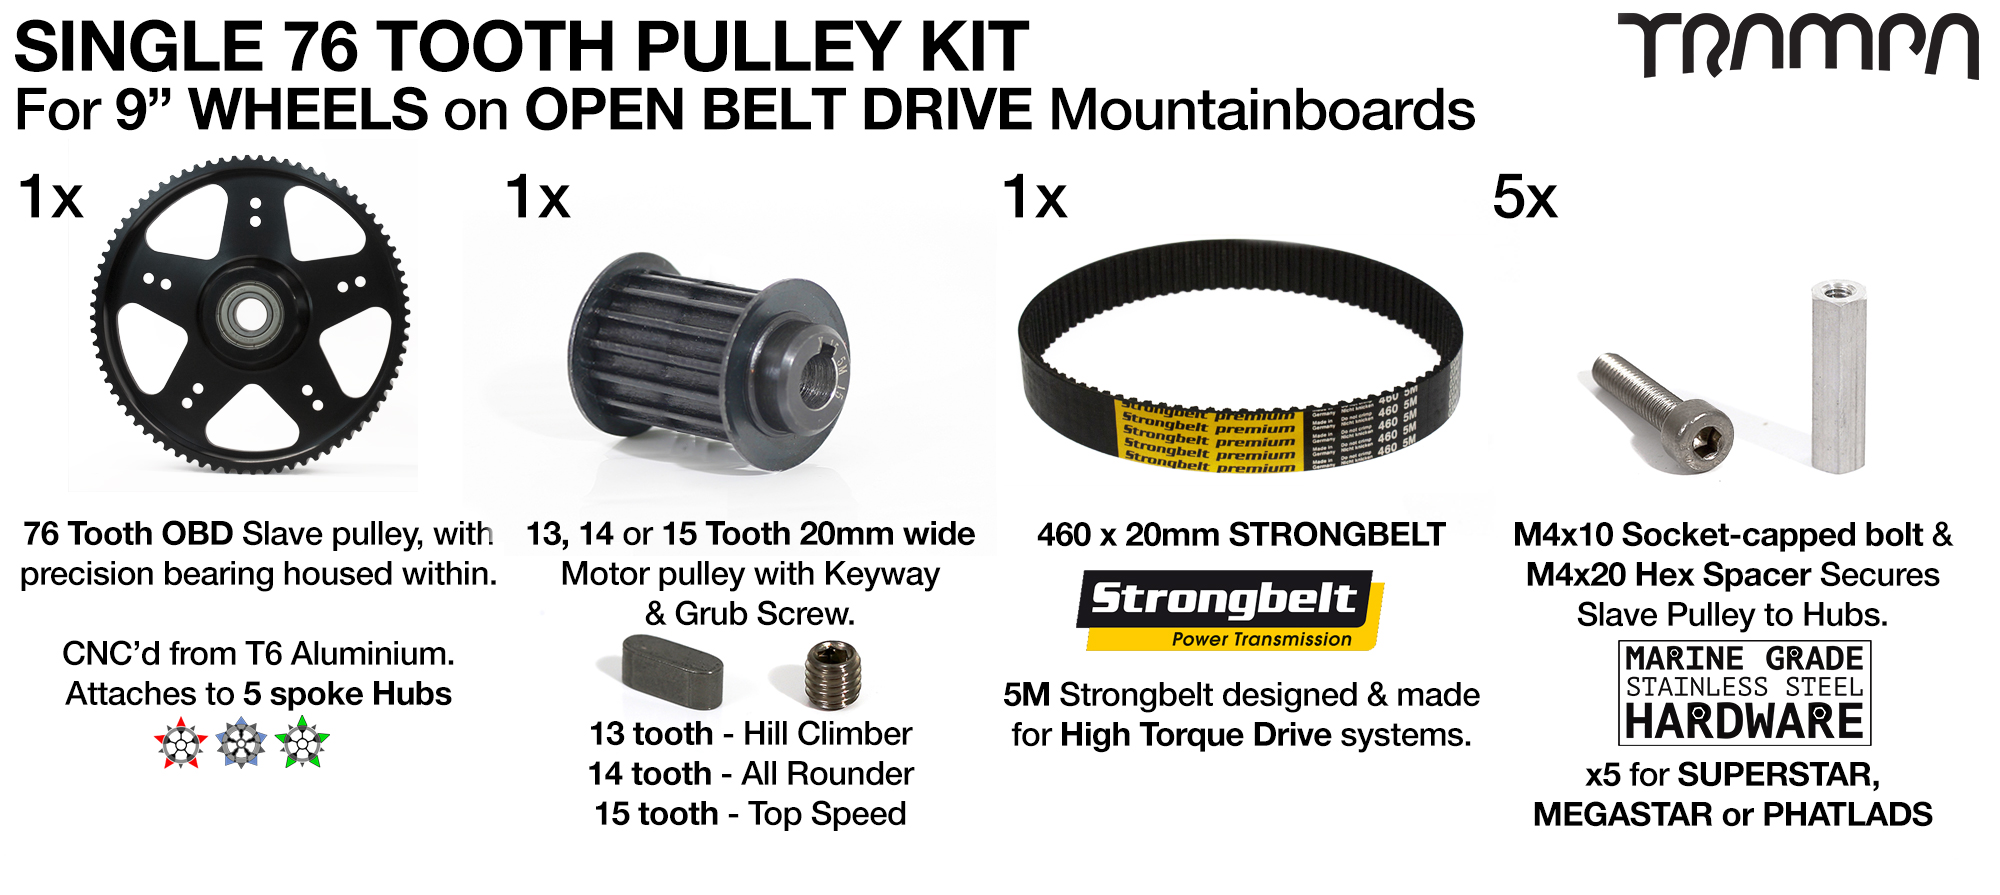 76T Open Belt Drive 76 Tooth Pulley Kit with 460mm x 20mm Belt for 9 Inch Wheels HIGH TORQUE - SINGLE